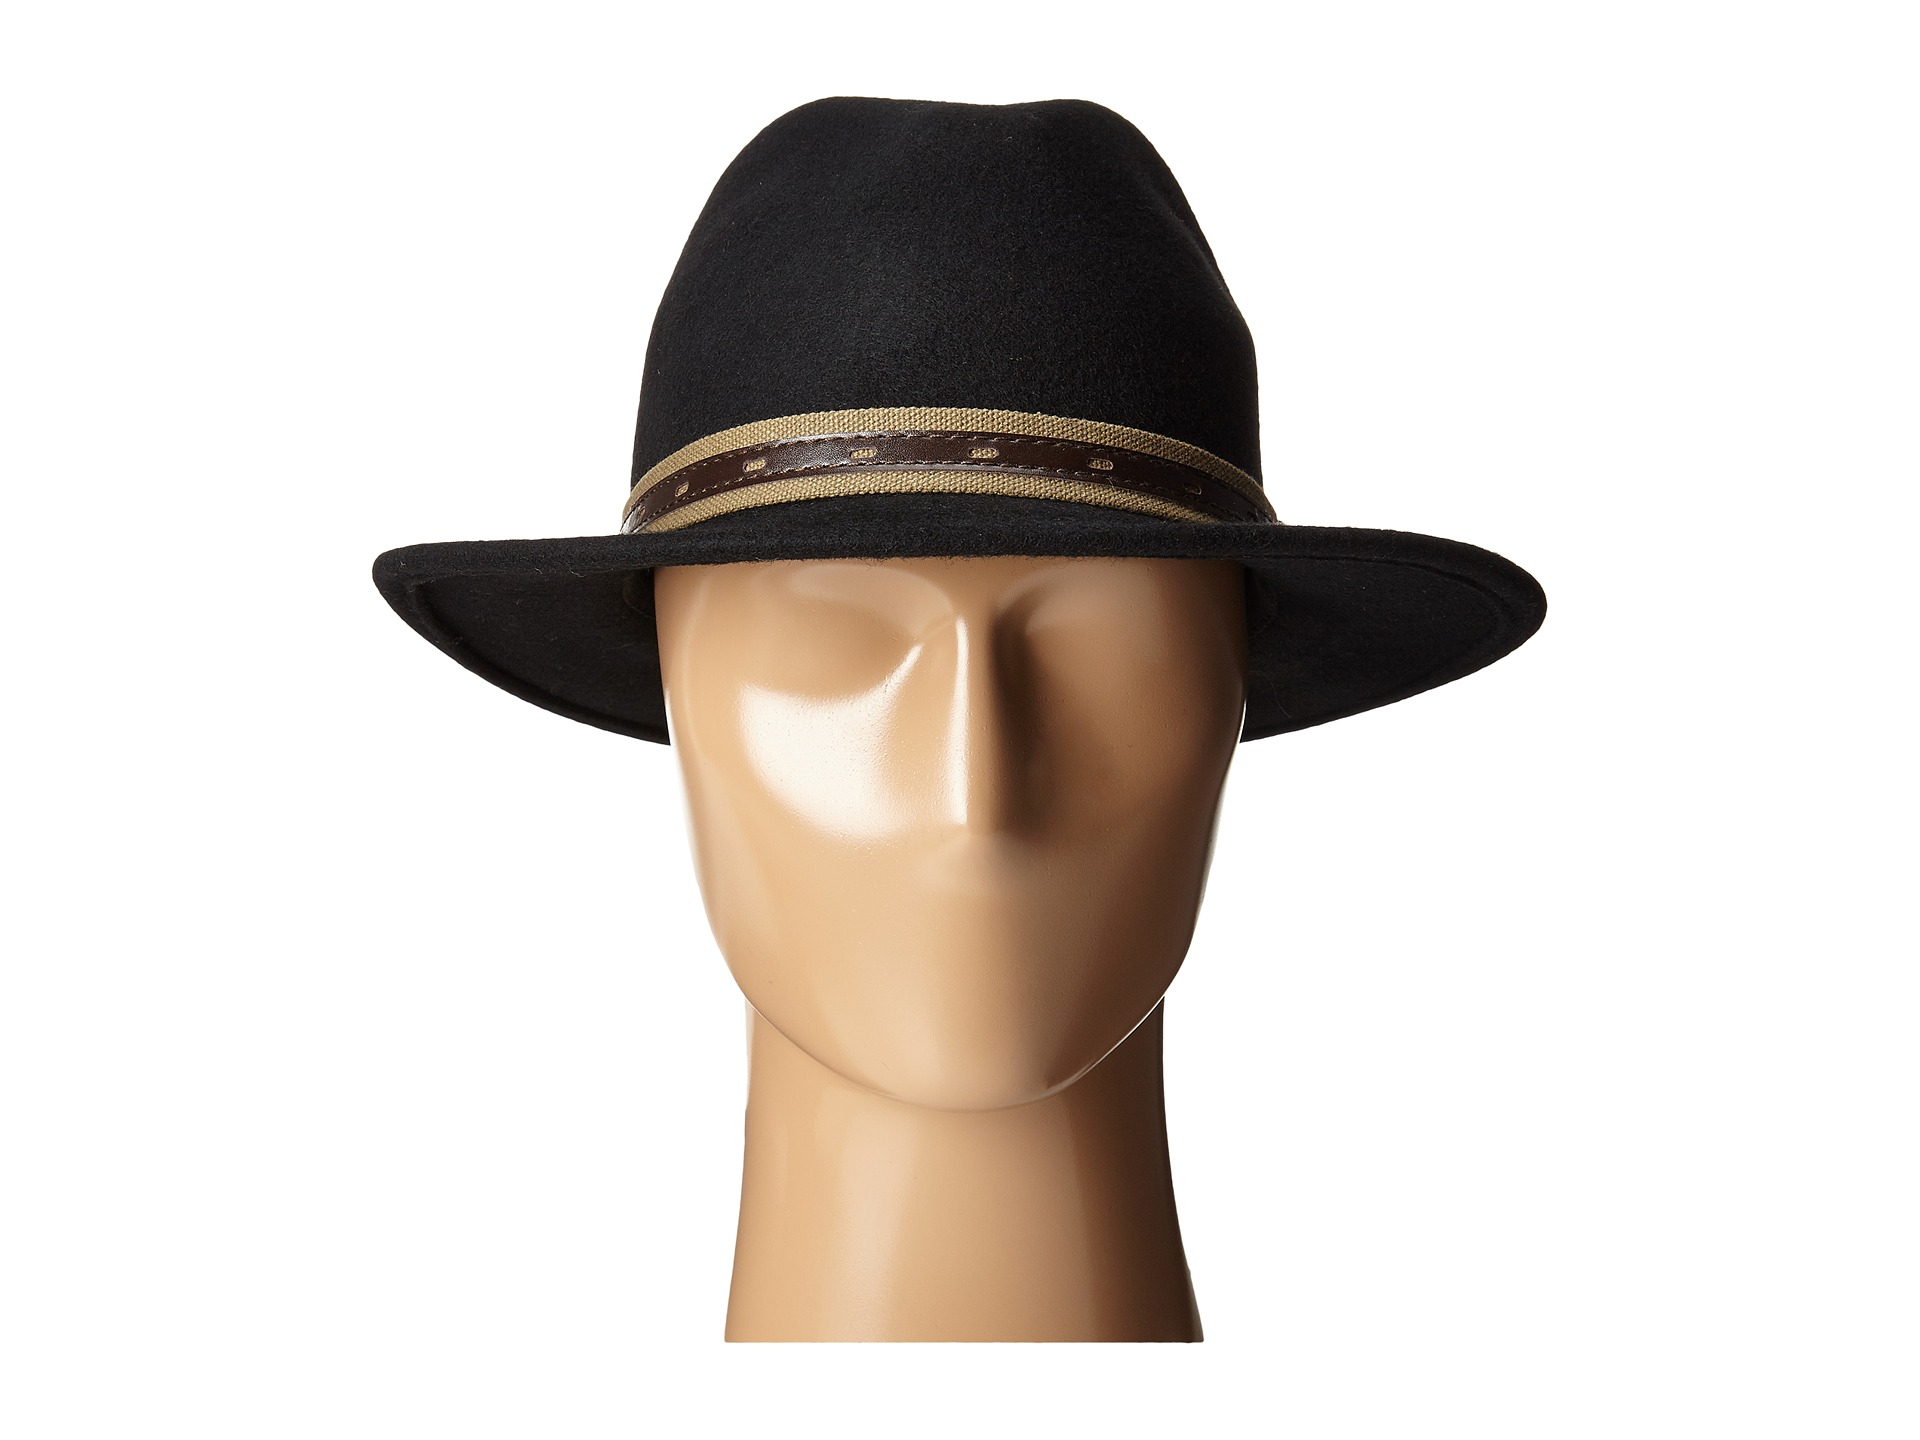 241a3e9d216 Lyst - San Diego Hat Company Wfh7952 Fedora With Faux Leather Band ...